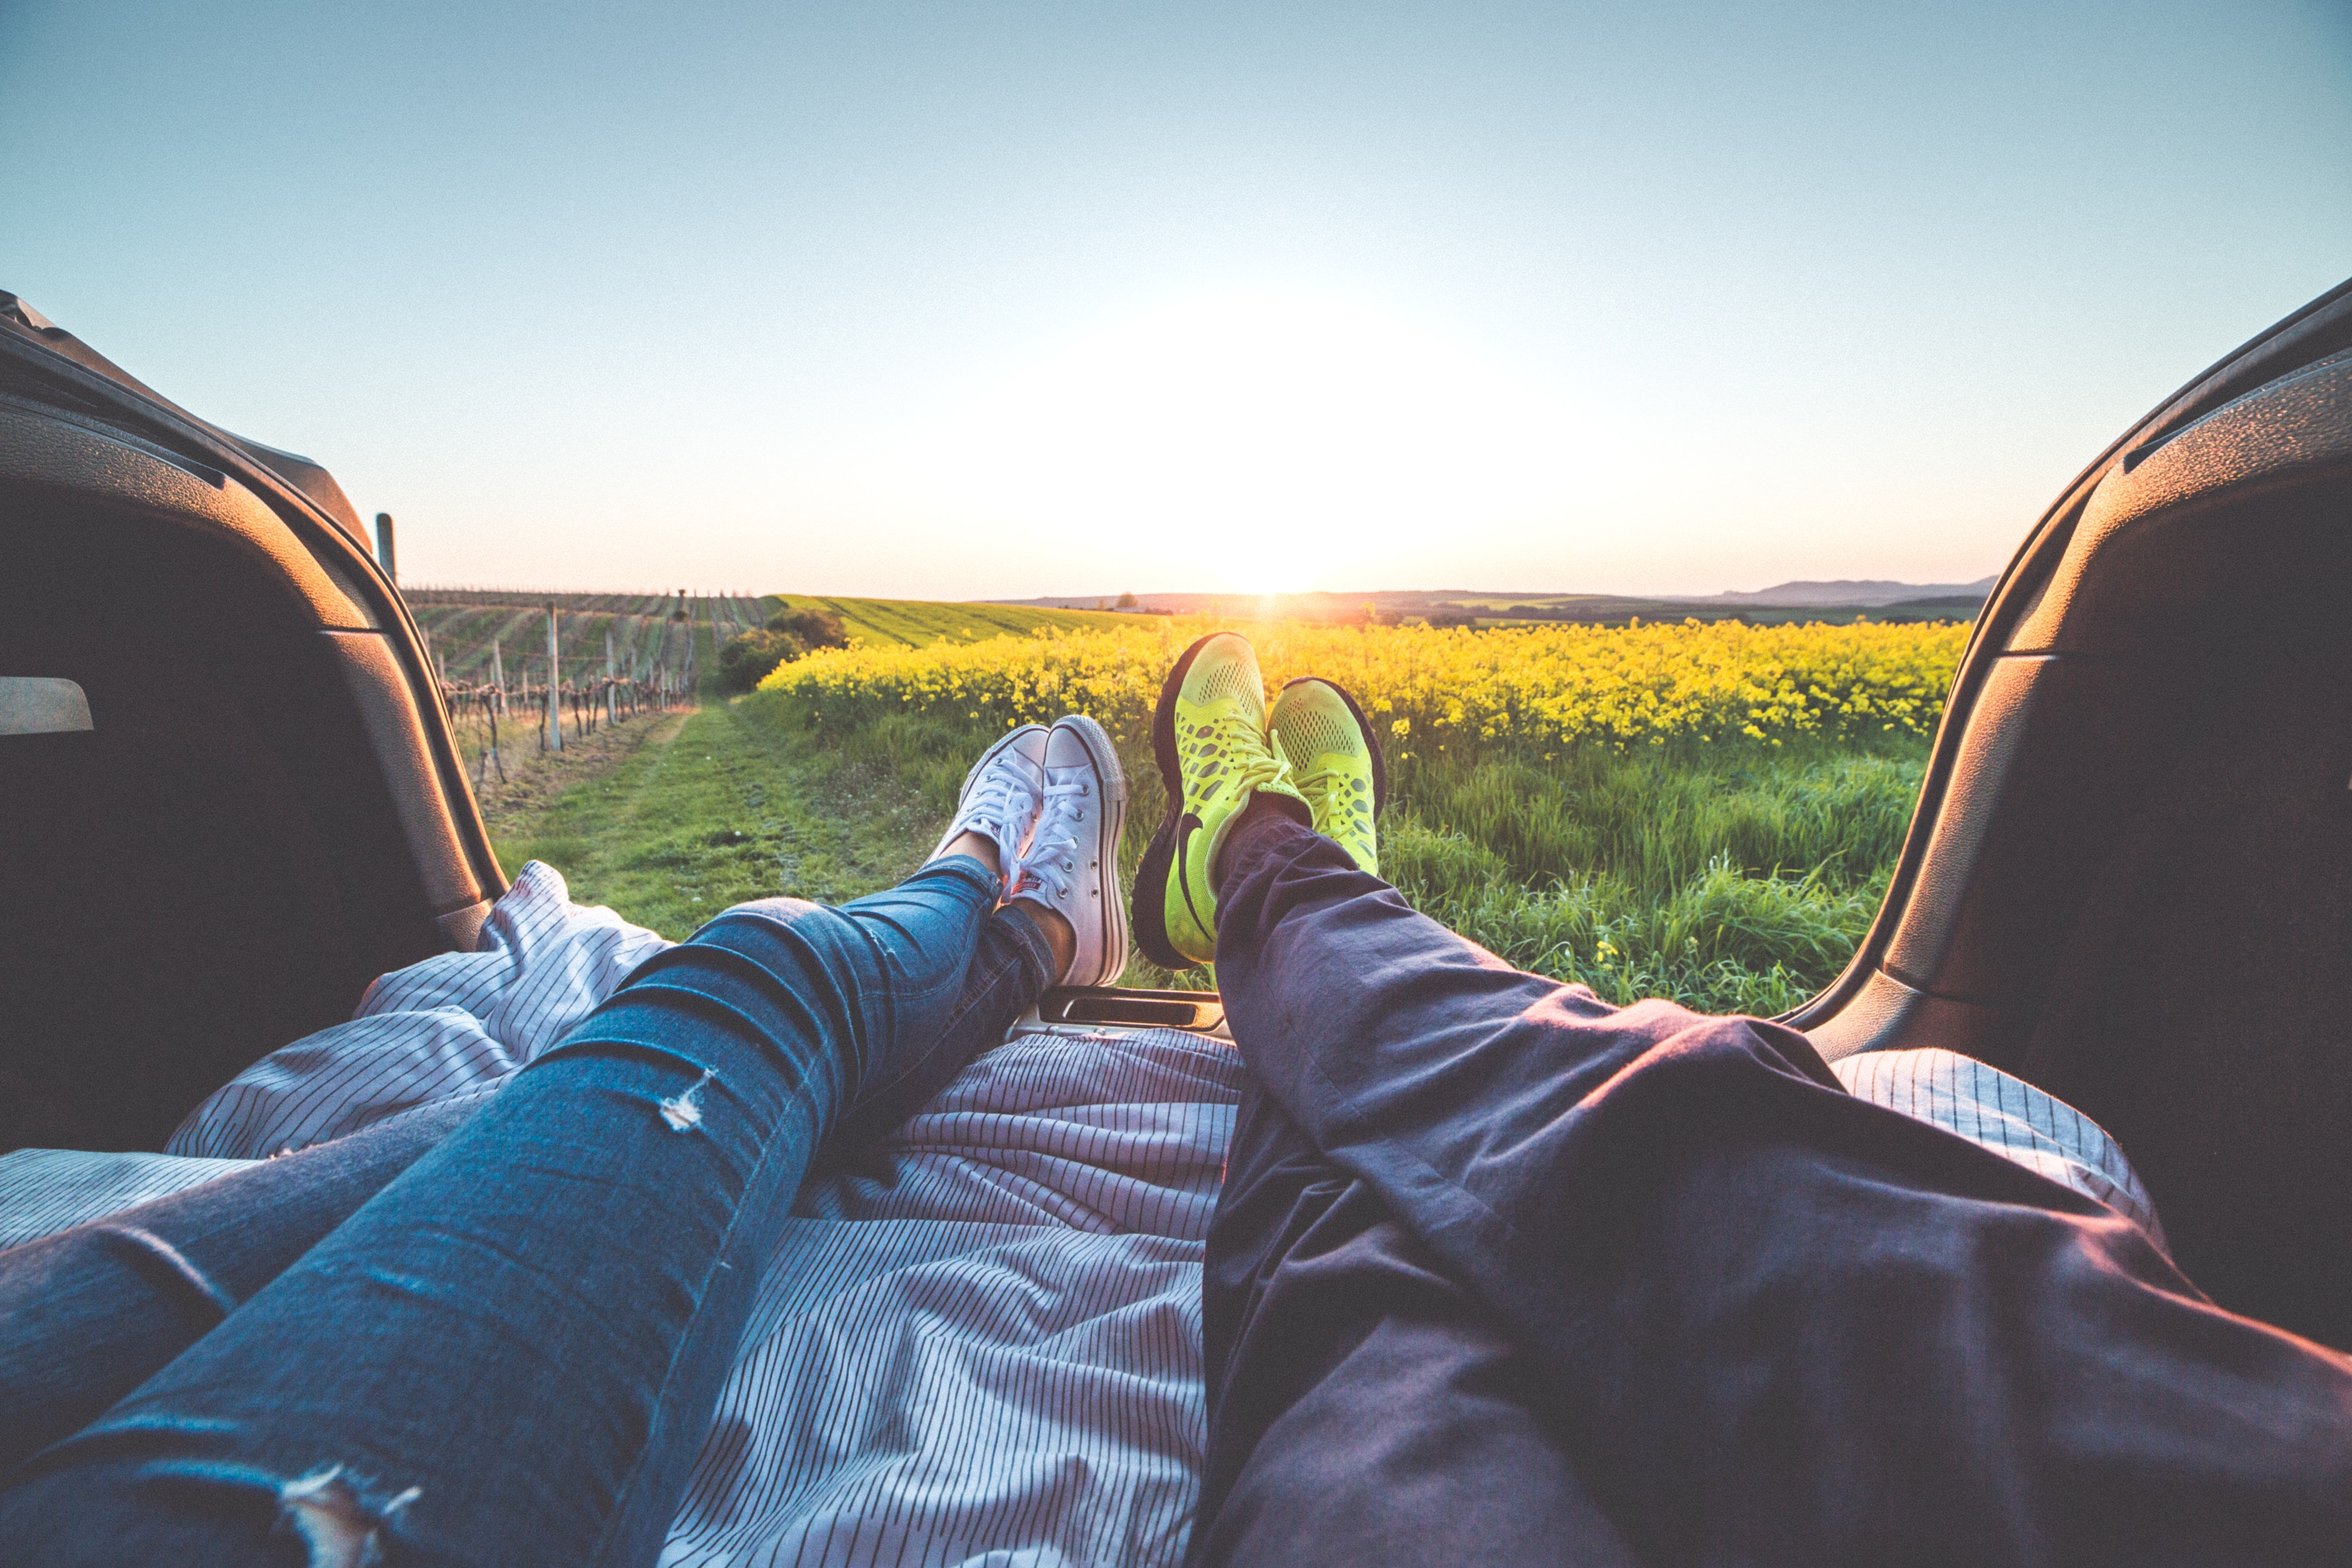 2 people sitting with view of yellow flowers during daytime photo